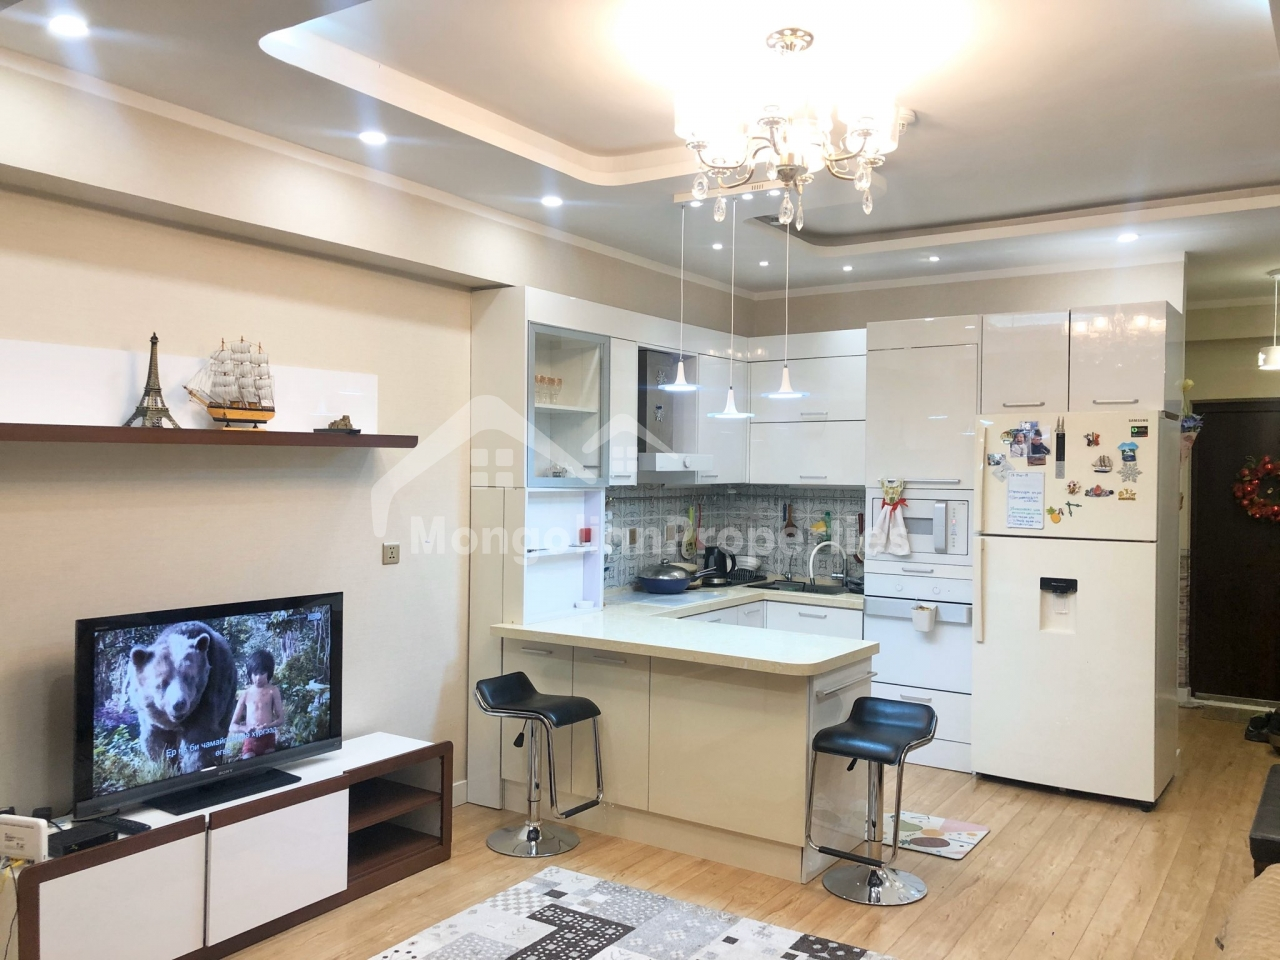 2 bedroom apartment for rent behind National Park